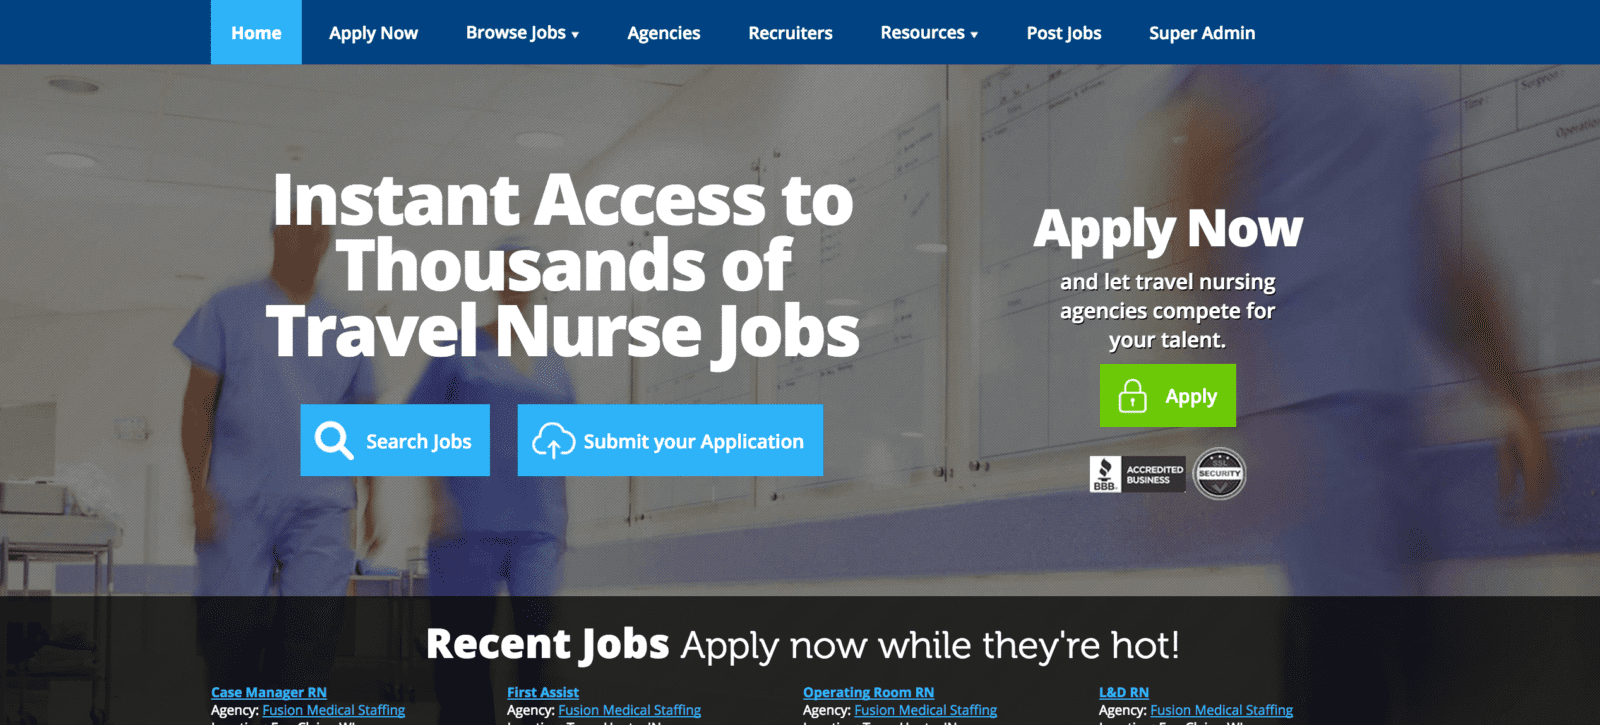 Travel Nurse Source Got a Huge Makeover